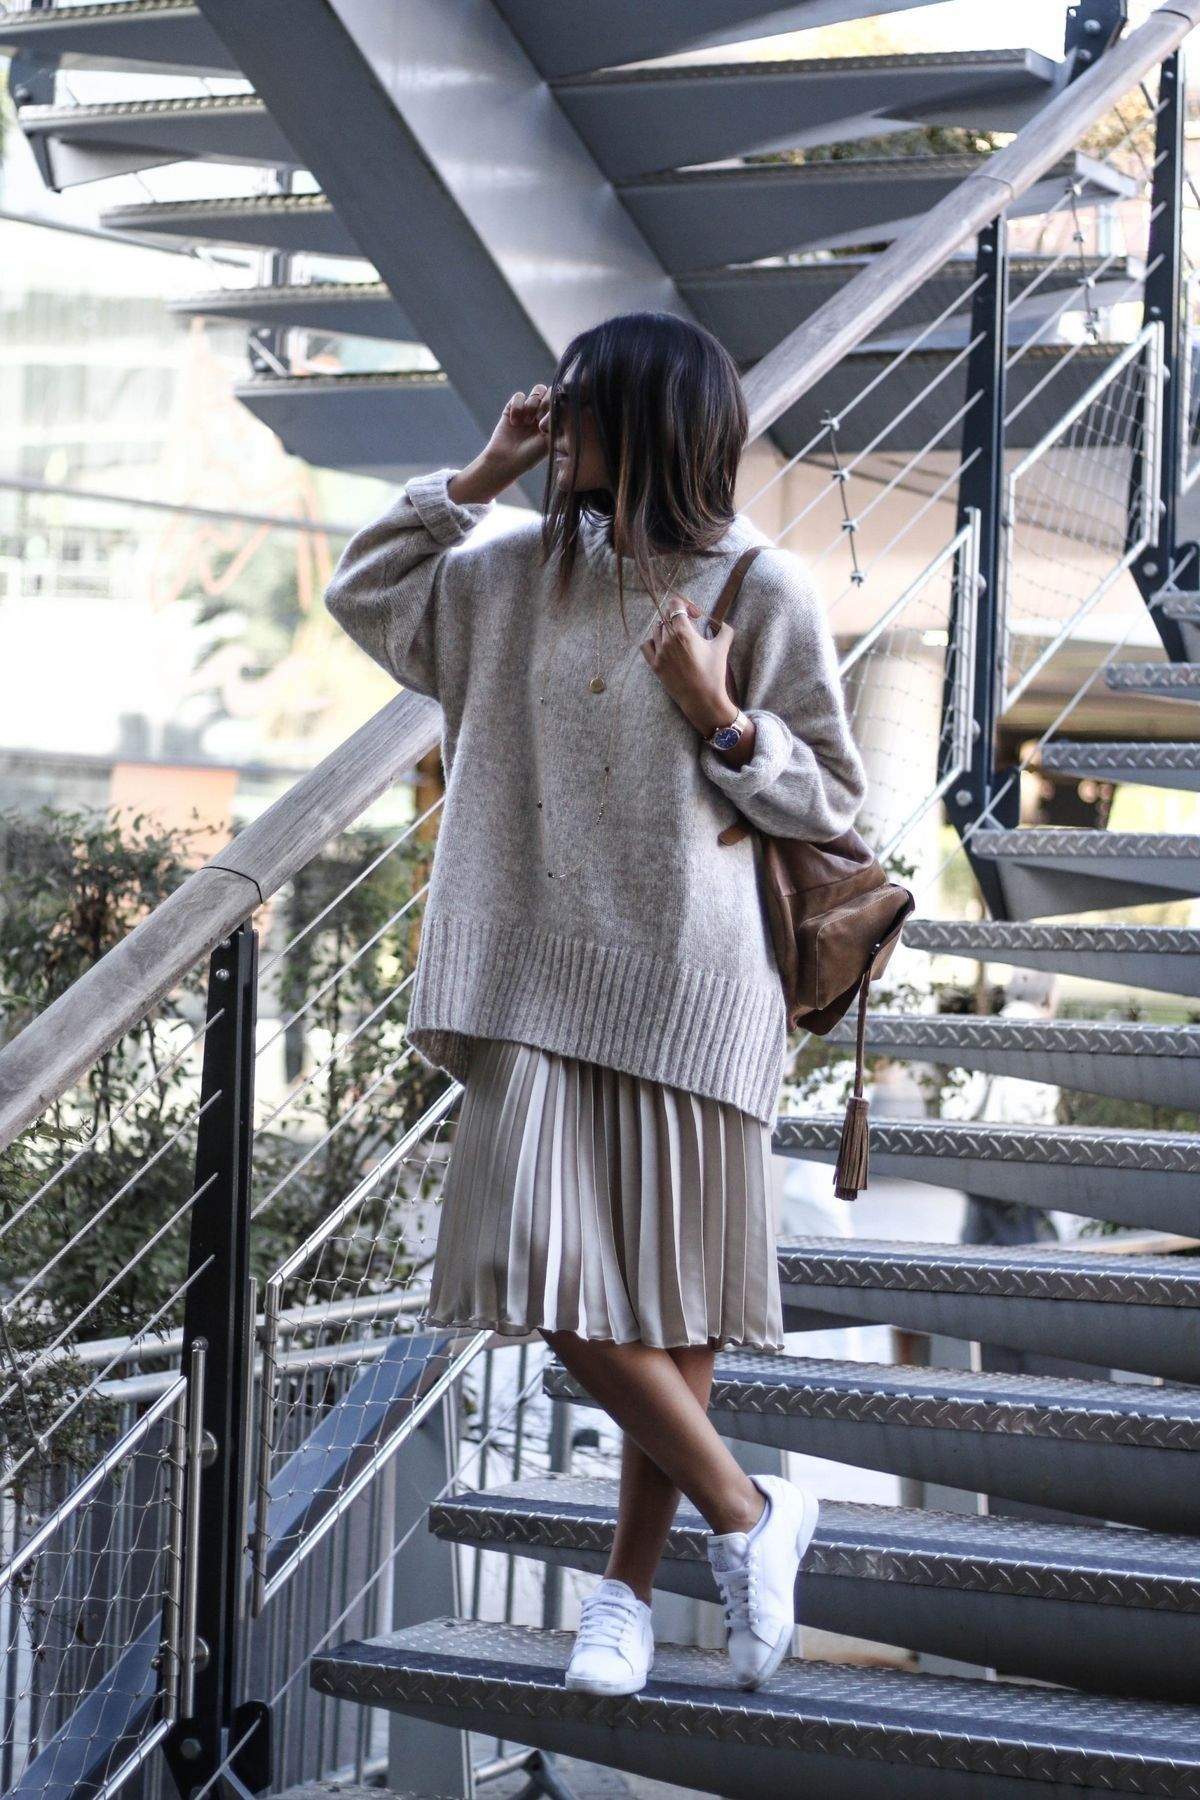 Jupe plissé Gros Pull- Inspi look Automne QUITE A SIMPLE OUTFIT, WHICH HAS BEEN VERY CLEVERLY 'PUT TOGETHER' - TO LOOK ABSOLUTELY AMAZING! - A SWEATER, PLEATED SKIRT & SNEAKERS!! - STUNNINGNESS! #fullskirtoutfit